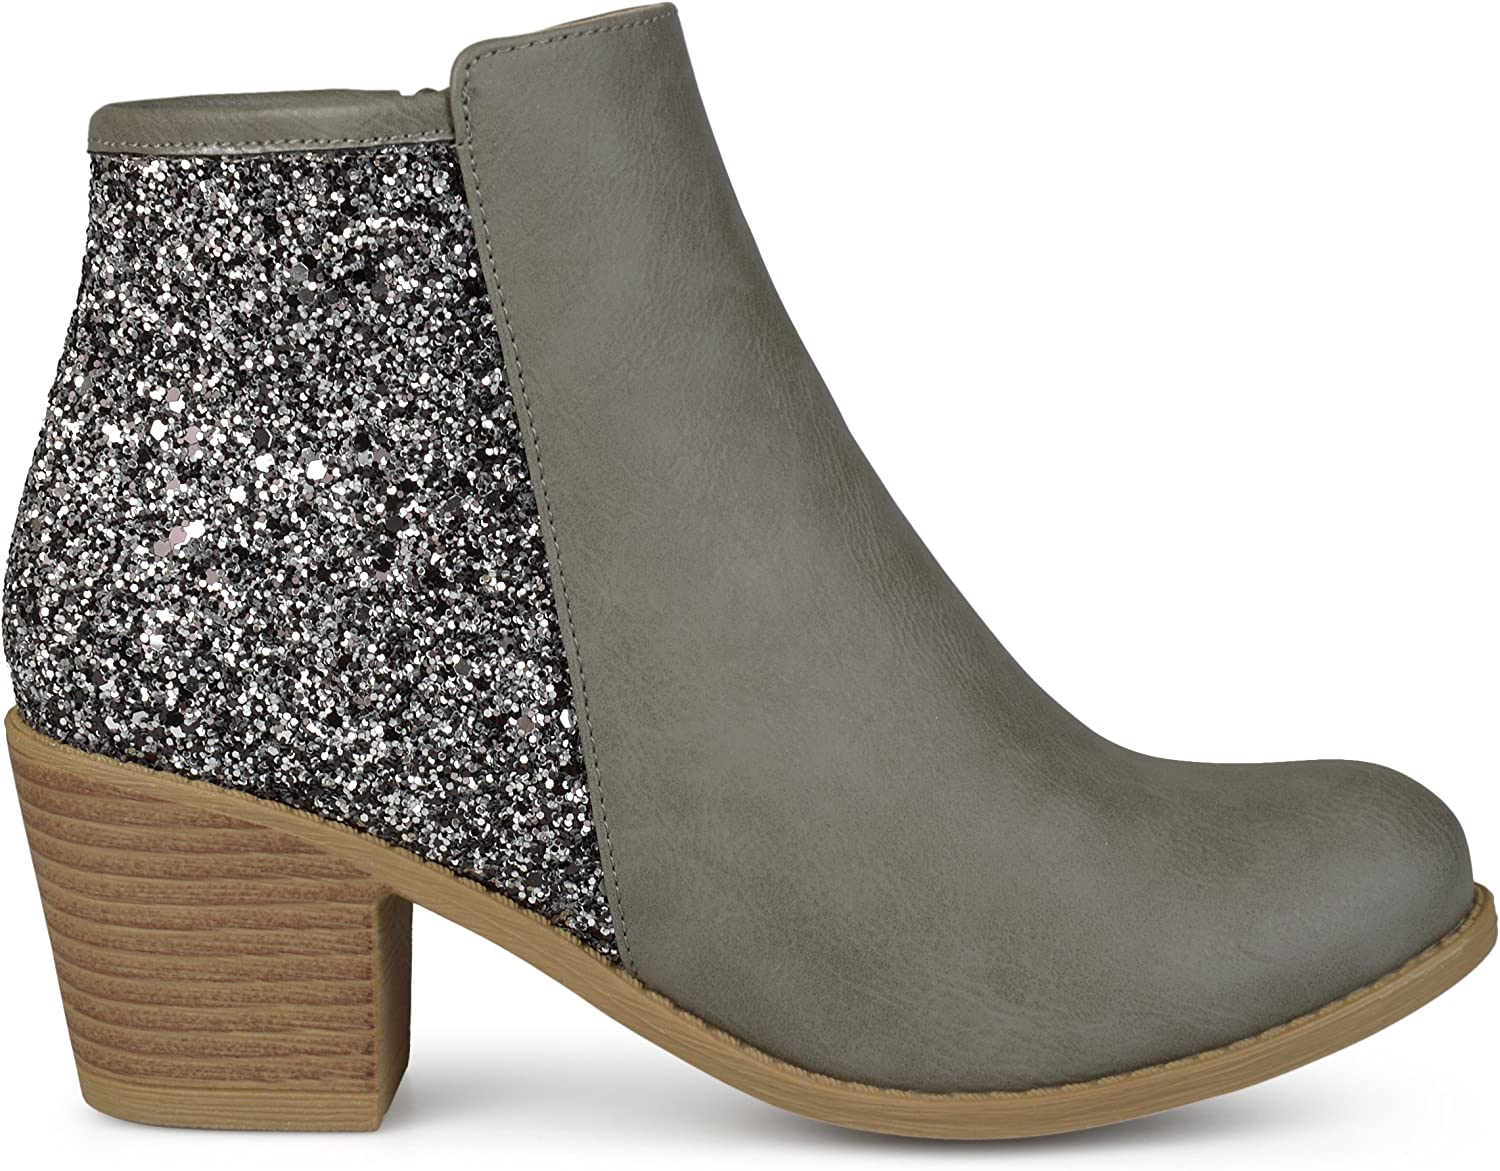 Brinley Co Womens Laser Dot Buckle Booties Ankle Boots New